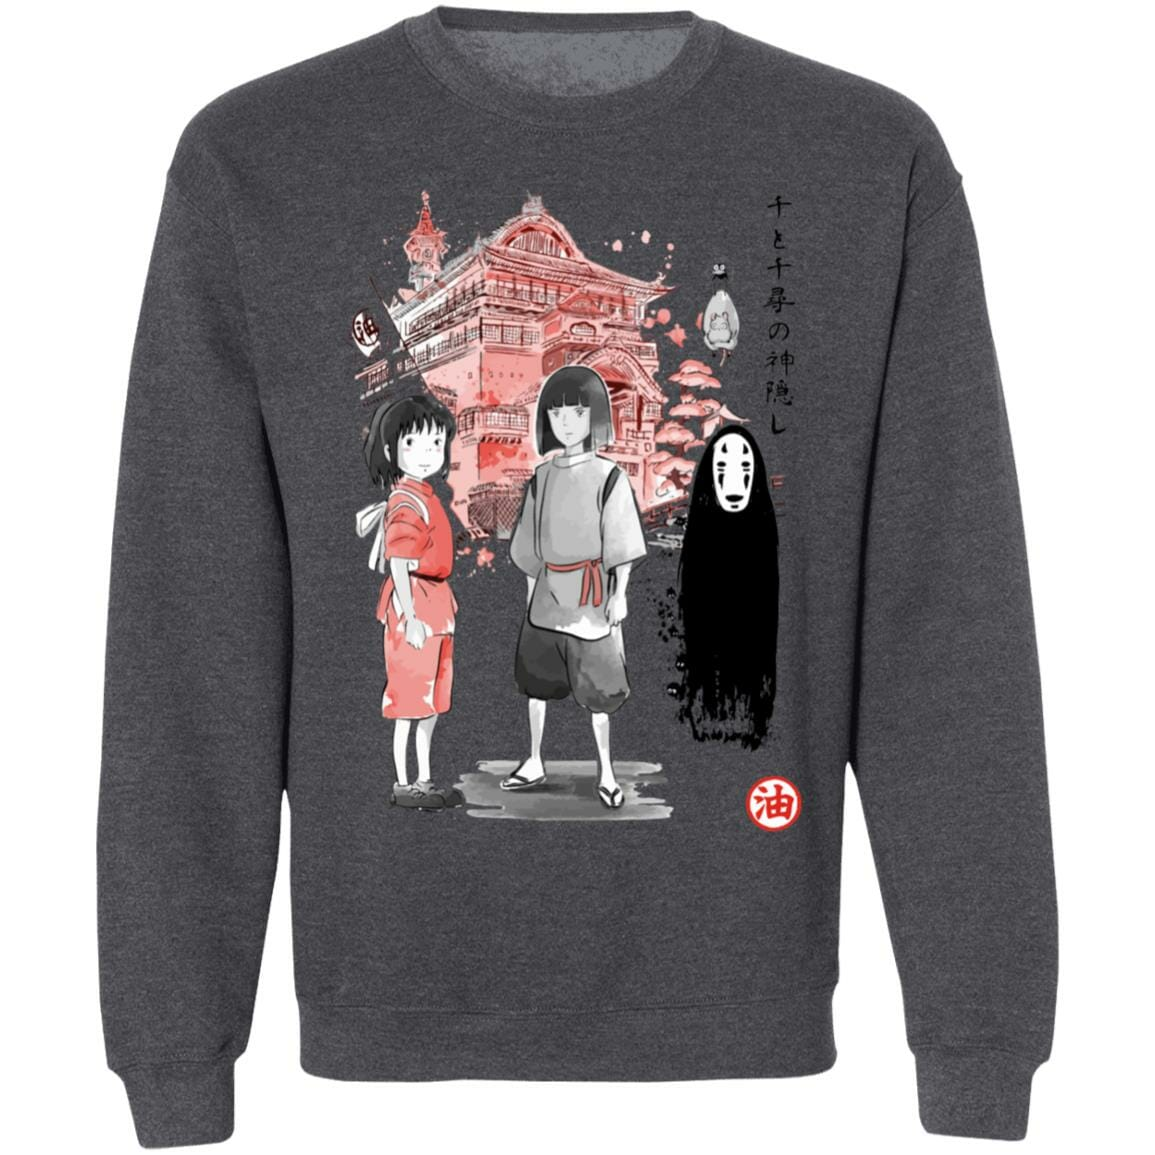 Spirited Away – Sen and Friends by the Bathhouse Sweatshirt